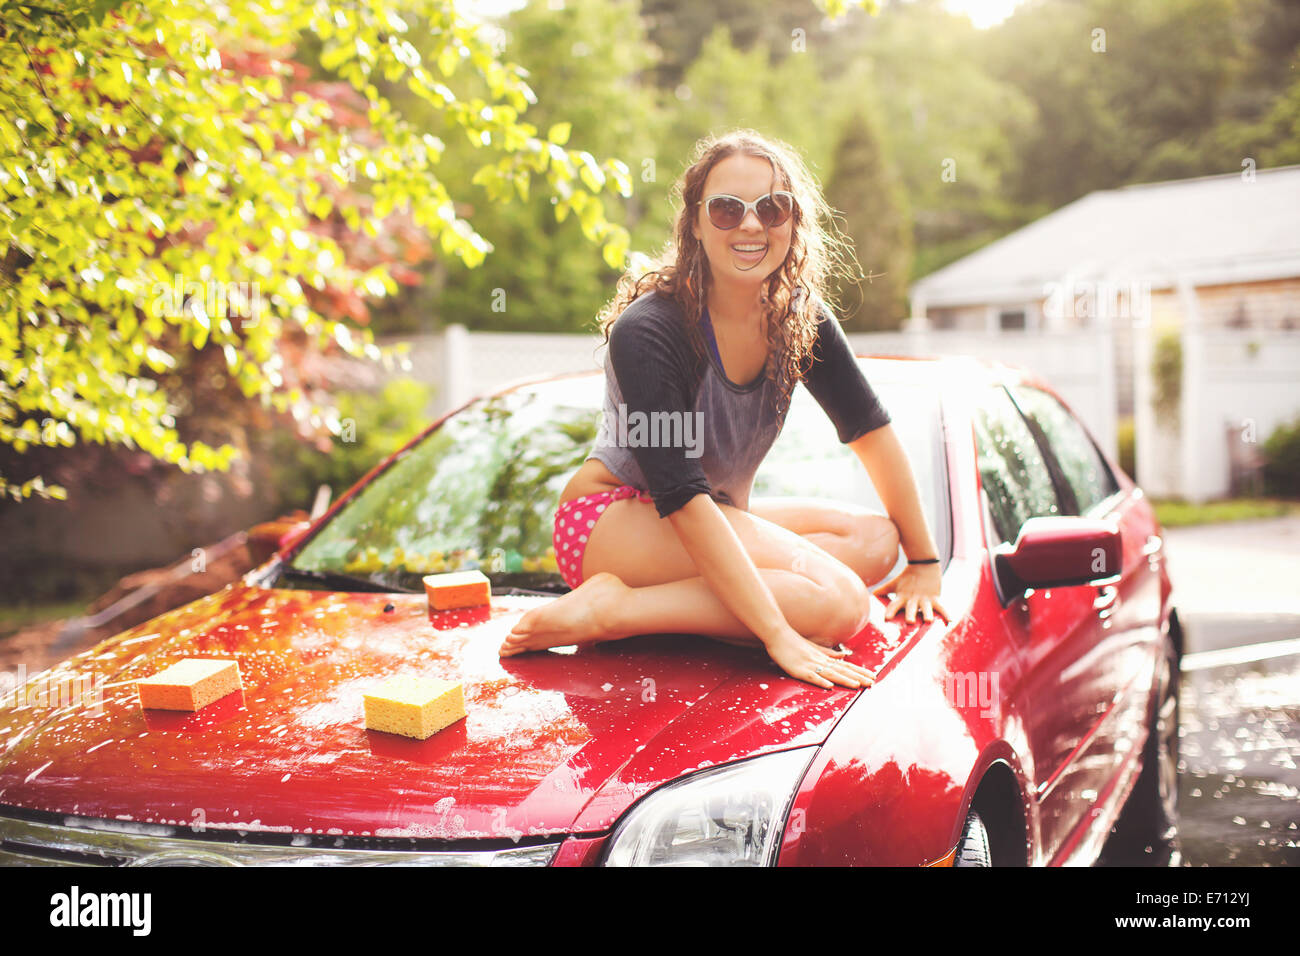 Young woman sitting on car bonnet, portrait - Stock Image